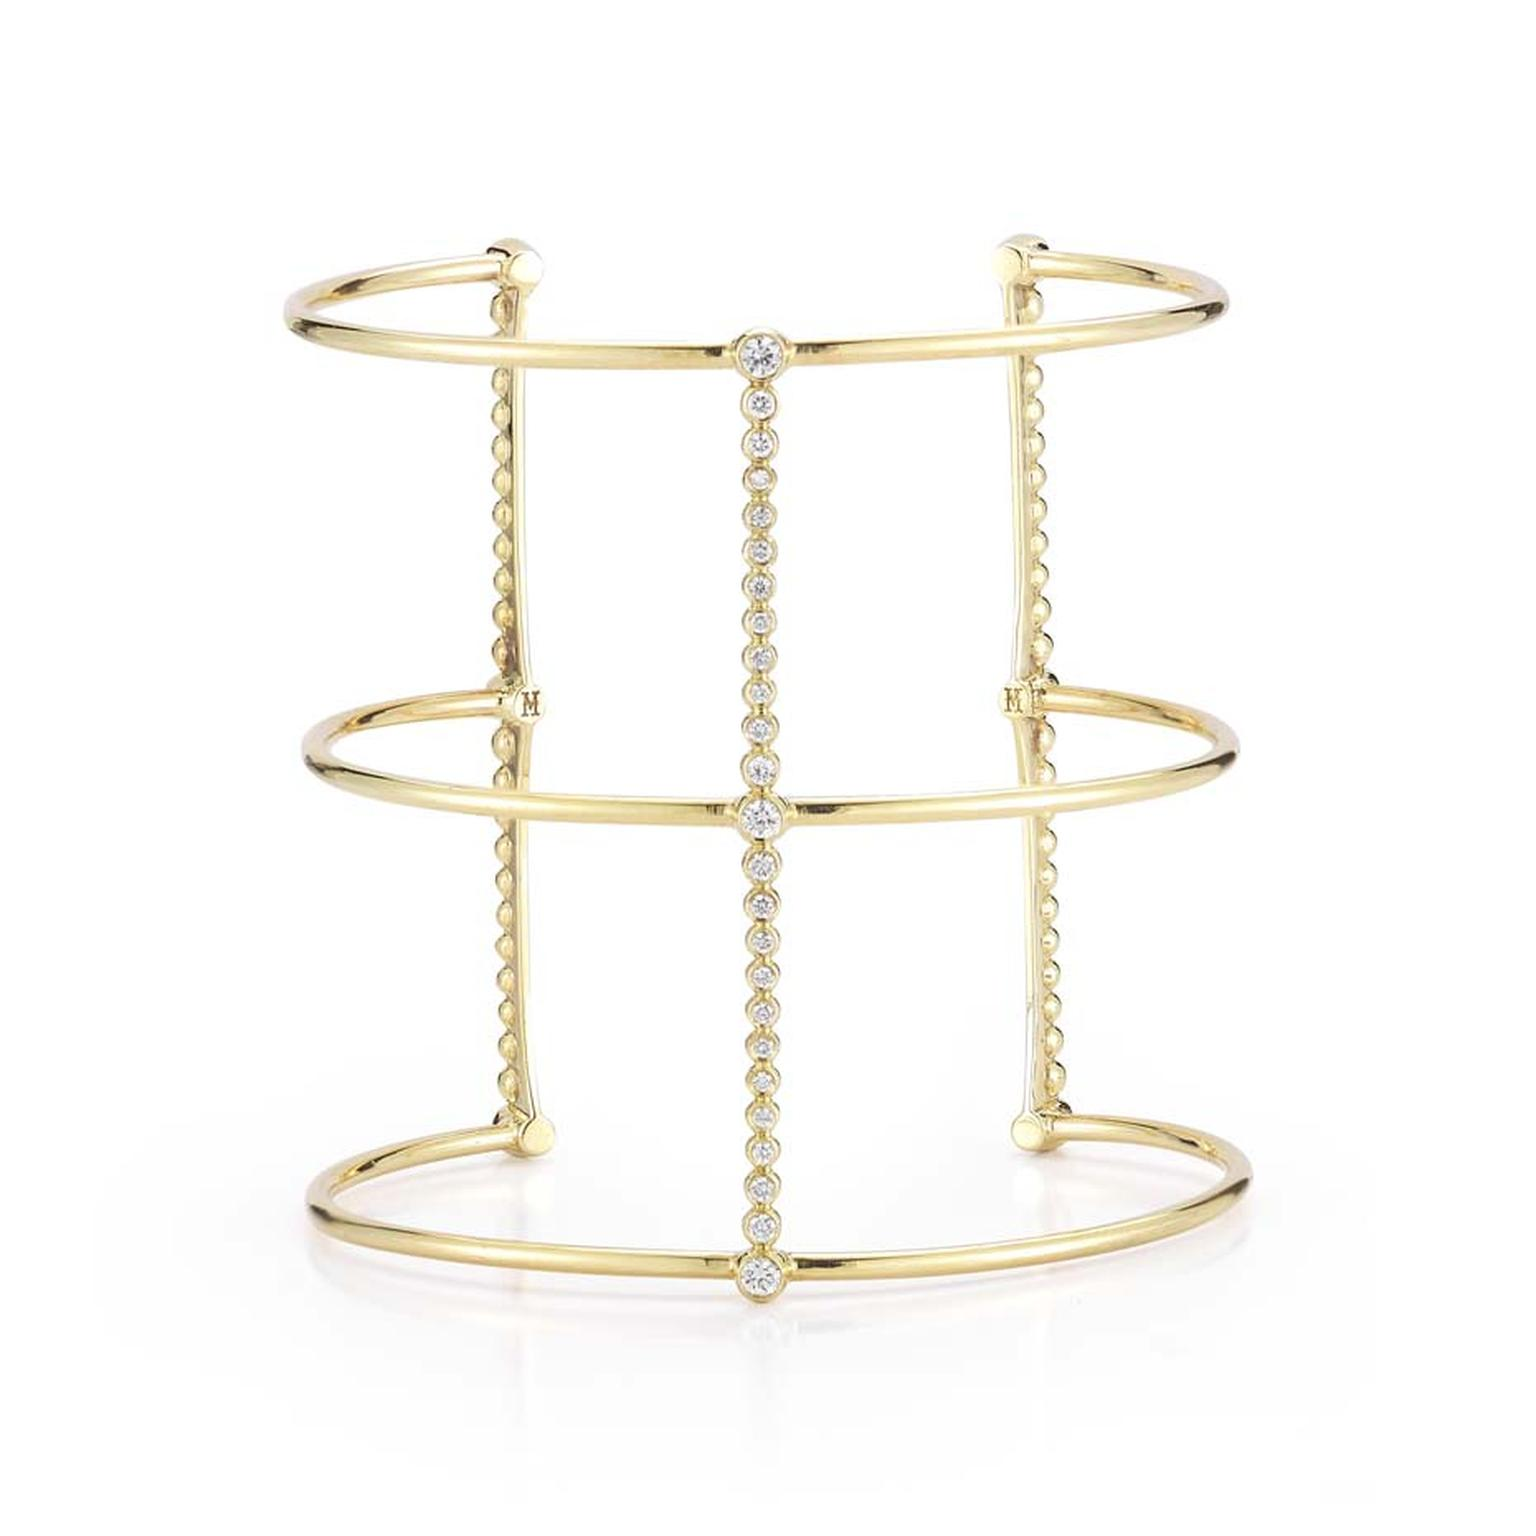 Mizuki jewelry Bar Gladiator cuff in gold and diamonds.